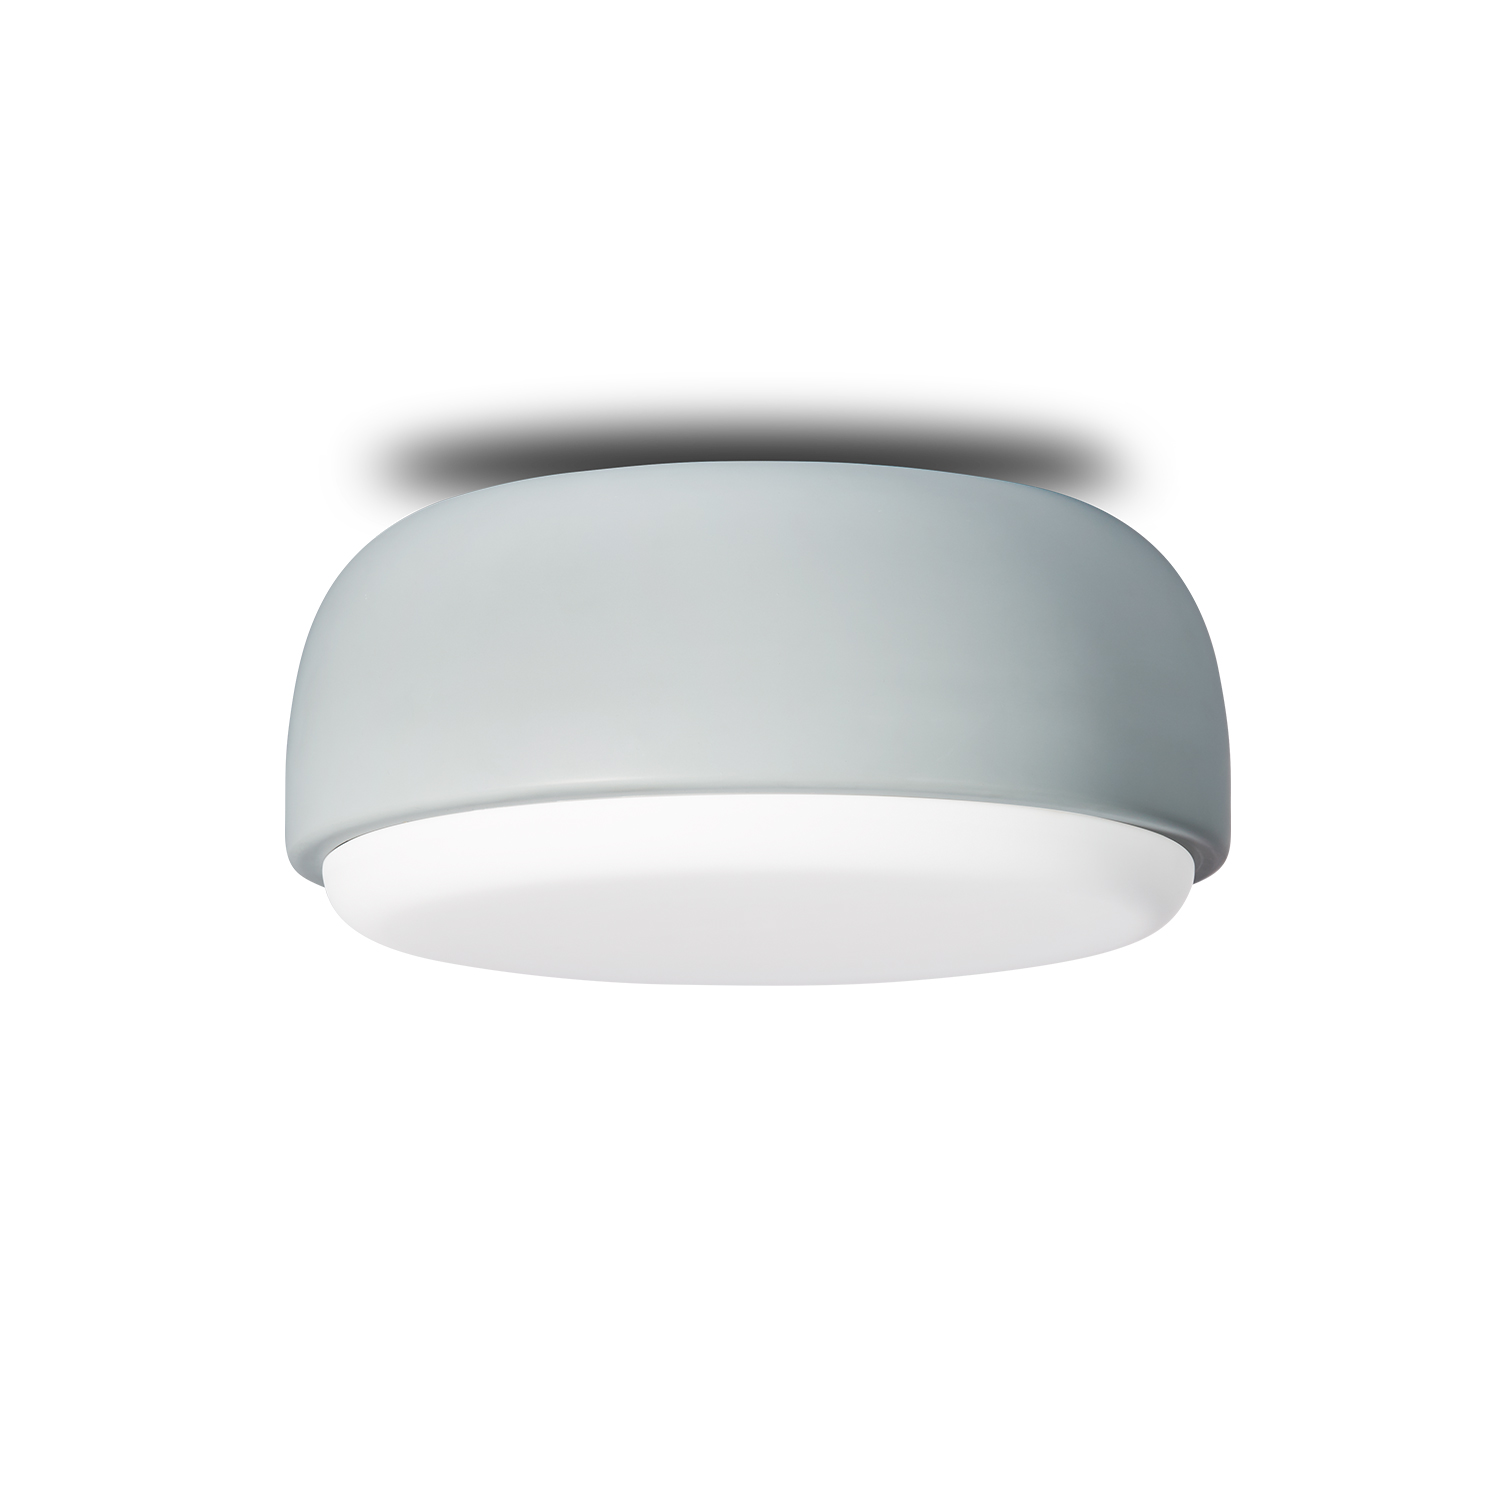 Ceiling Light Near Me Over Me 30 Ceiling Wall Lamp Dusty Blue